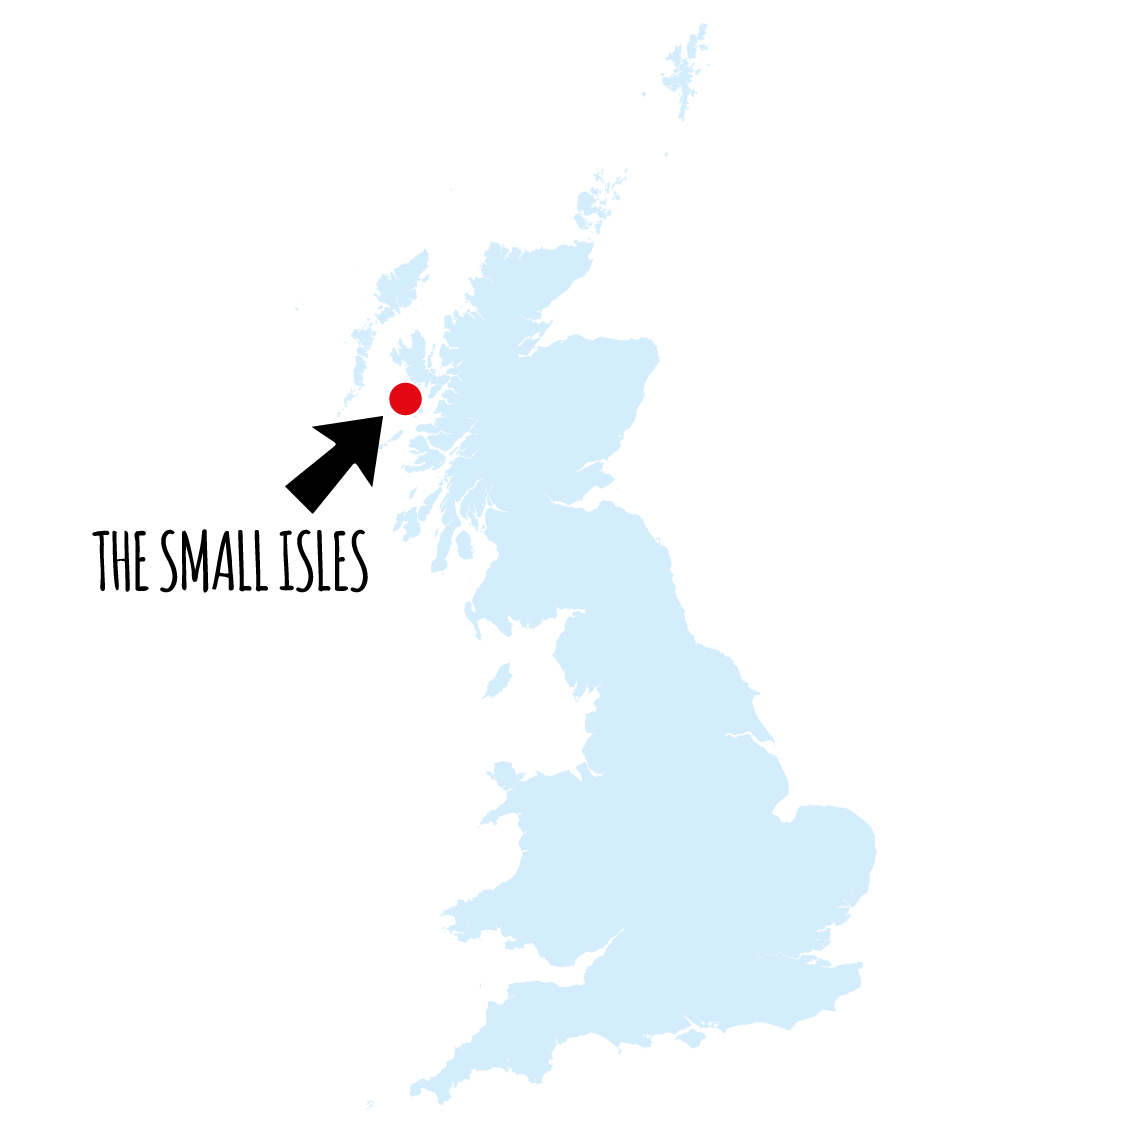 the-small-isles-map.png